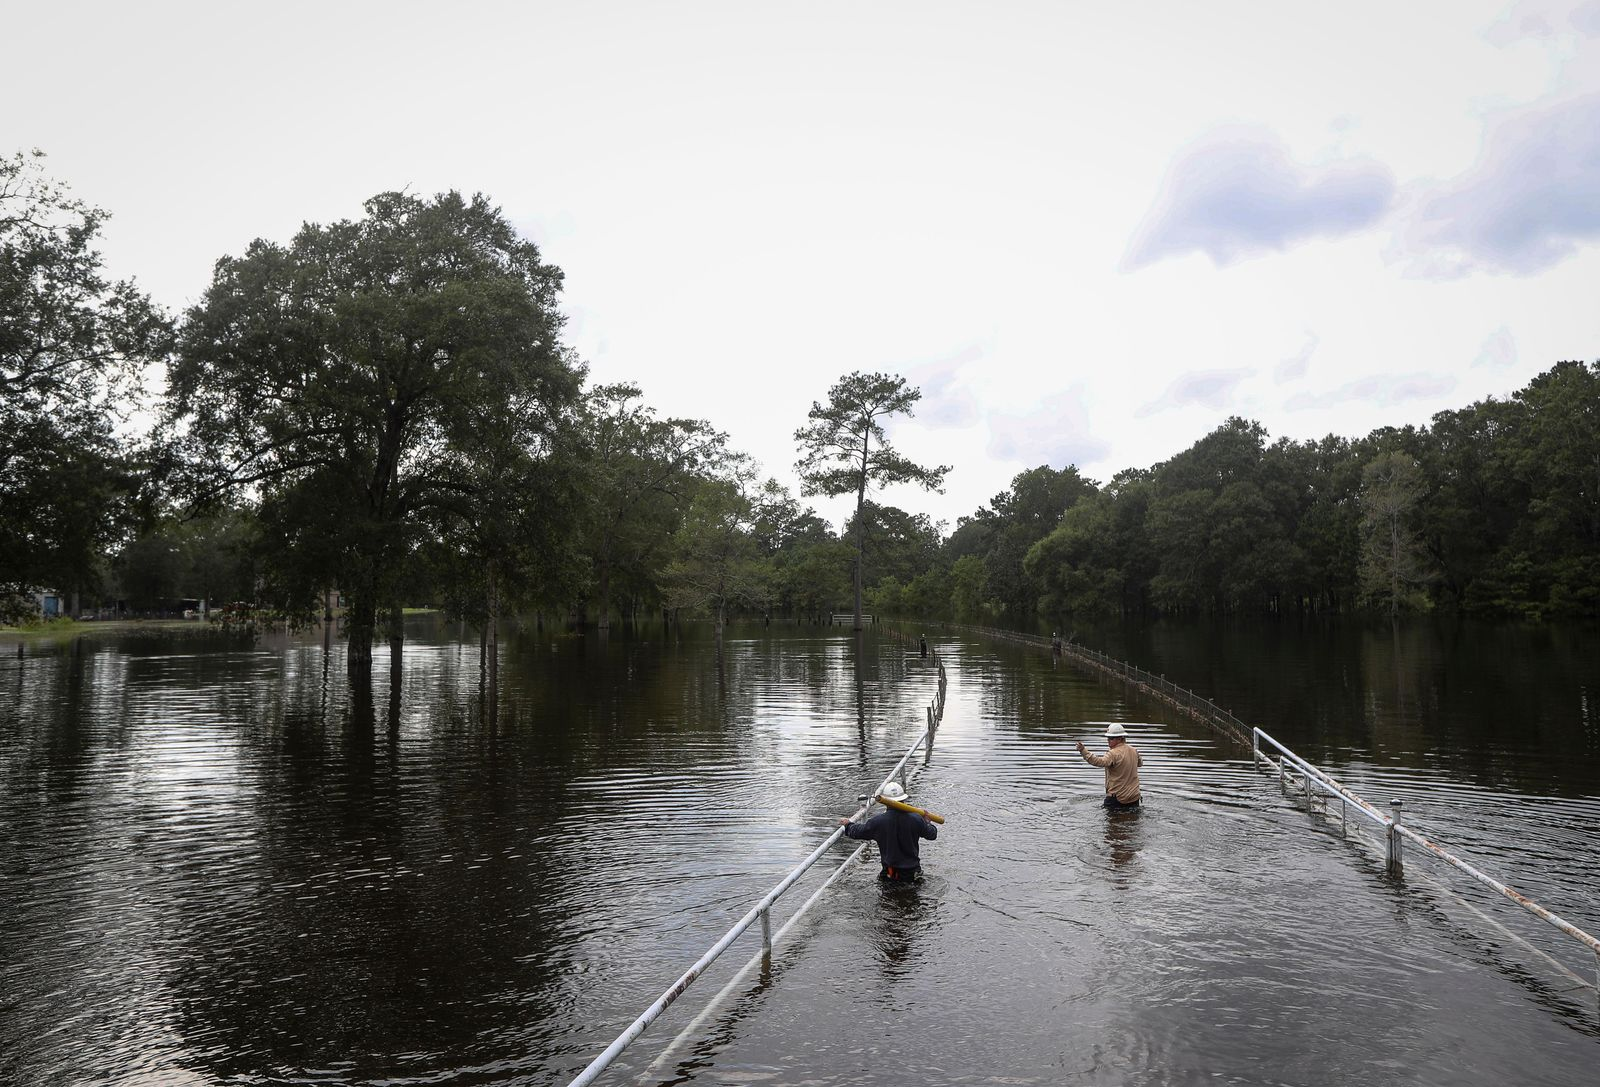 Mike Davis, left, and Trent Tipton, both line workers from Woodville, Texas, walk through floodwater to try to restore power for a customer on Friday, Sept. 20, 2019, in the Mauriceville, Texas, area. Floodwaters are starting to recede in most of the Houston area after the remnants of Tropical Storm Imelda flooded parts of Texas. ( Jon Shapley/Houston Chronicle via AP)